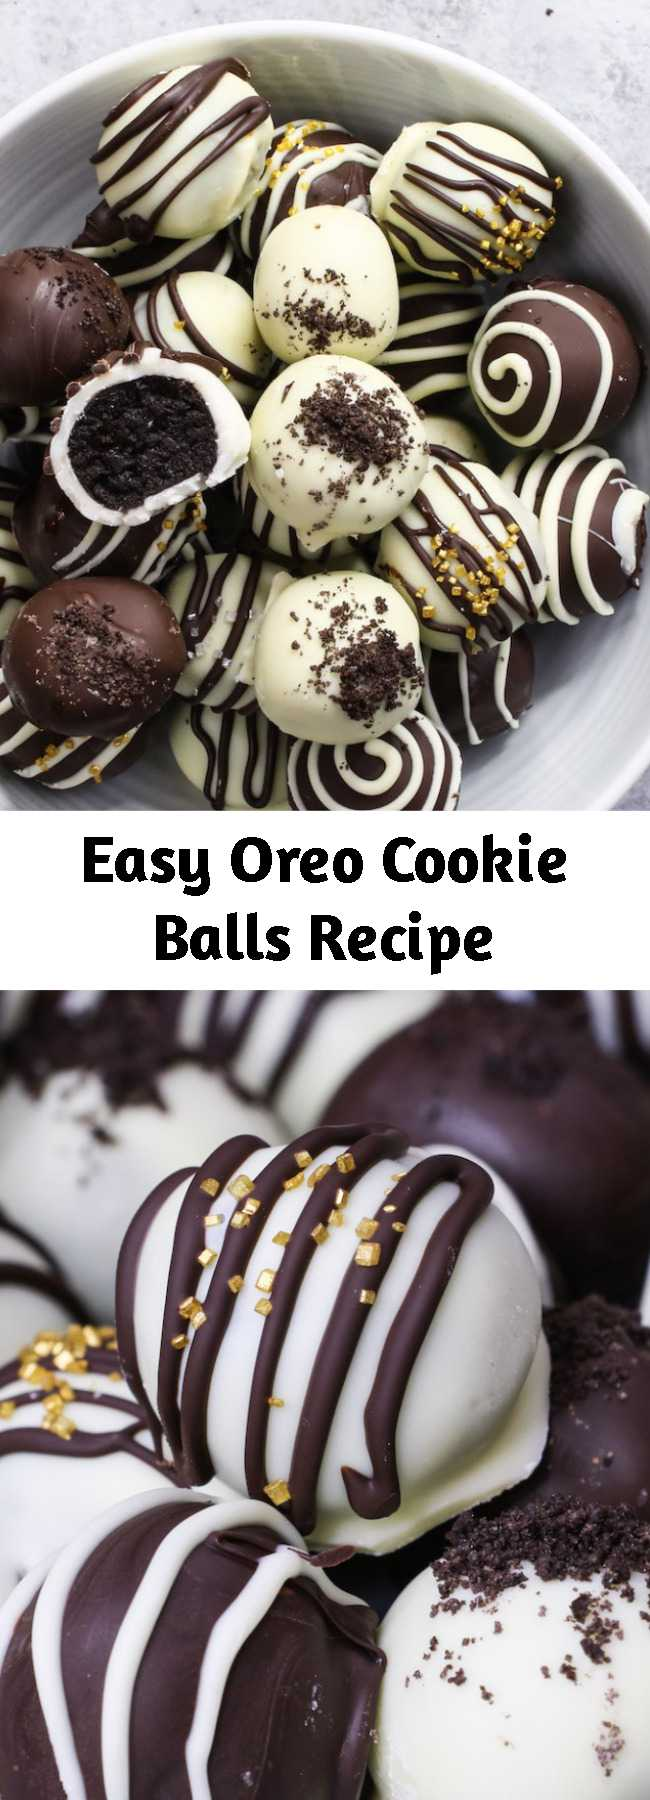 Easy Oreo Cookie Balls Recipe - Oreo Cookie Balls are a creamy and rich bite-sized no-bake treat: crushed oreo cookies are mixed with cream cheese, and then these oreo balls are coated with melted chocolate. Only 3 ingredients! They are an easy dessert for holidays such as Christmas!